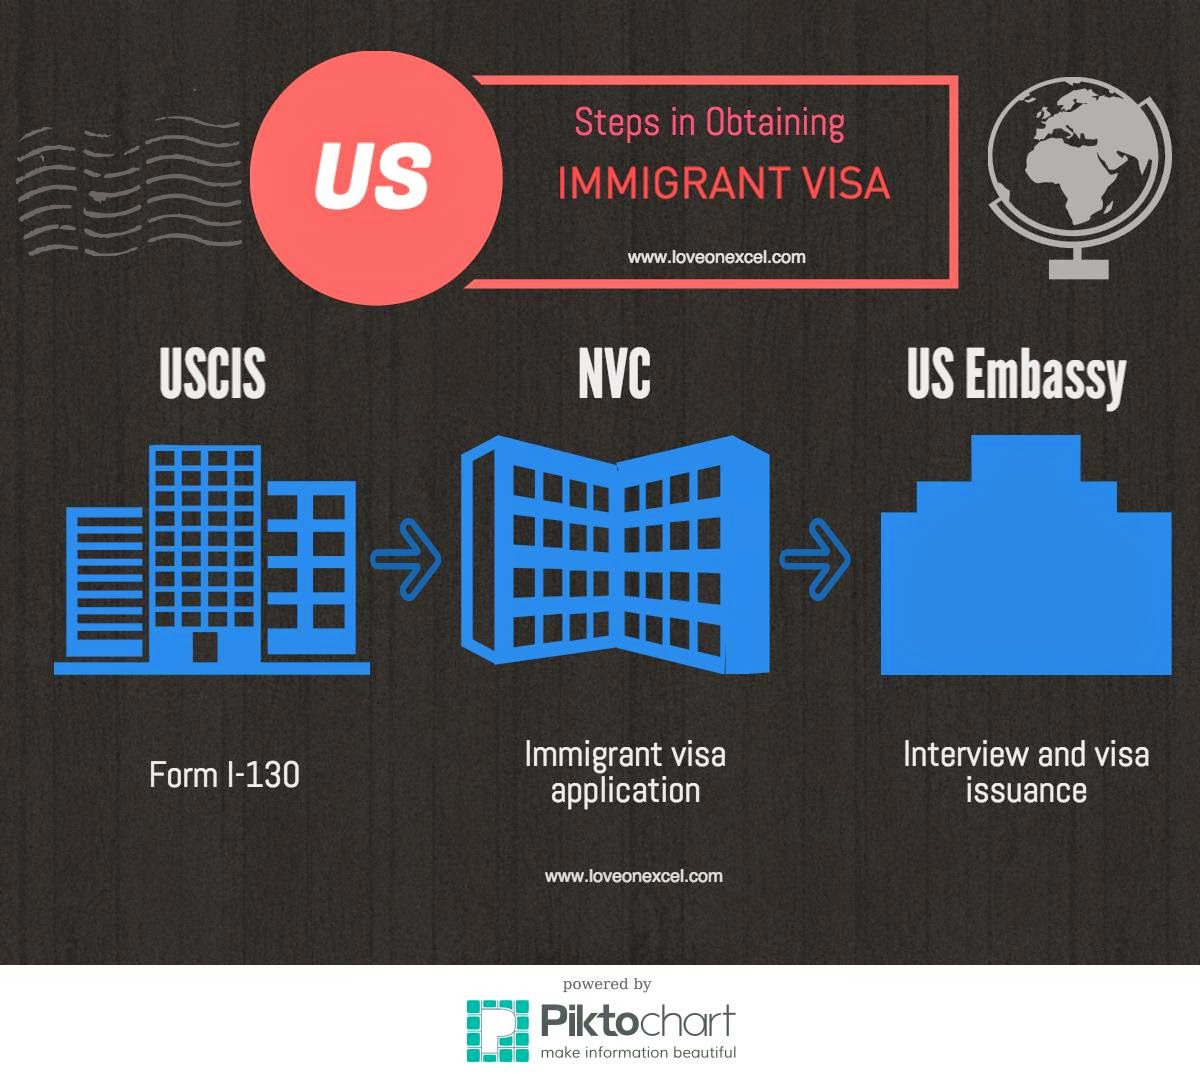 offices that process a US immigrant visa | CR-1 Immigrant Visa from USCIS to NVC